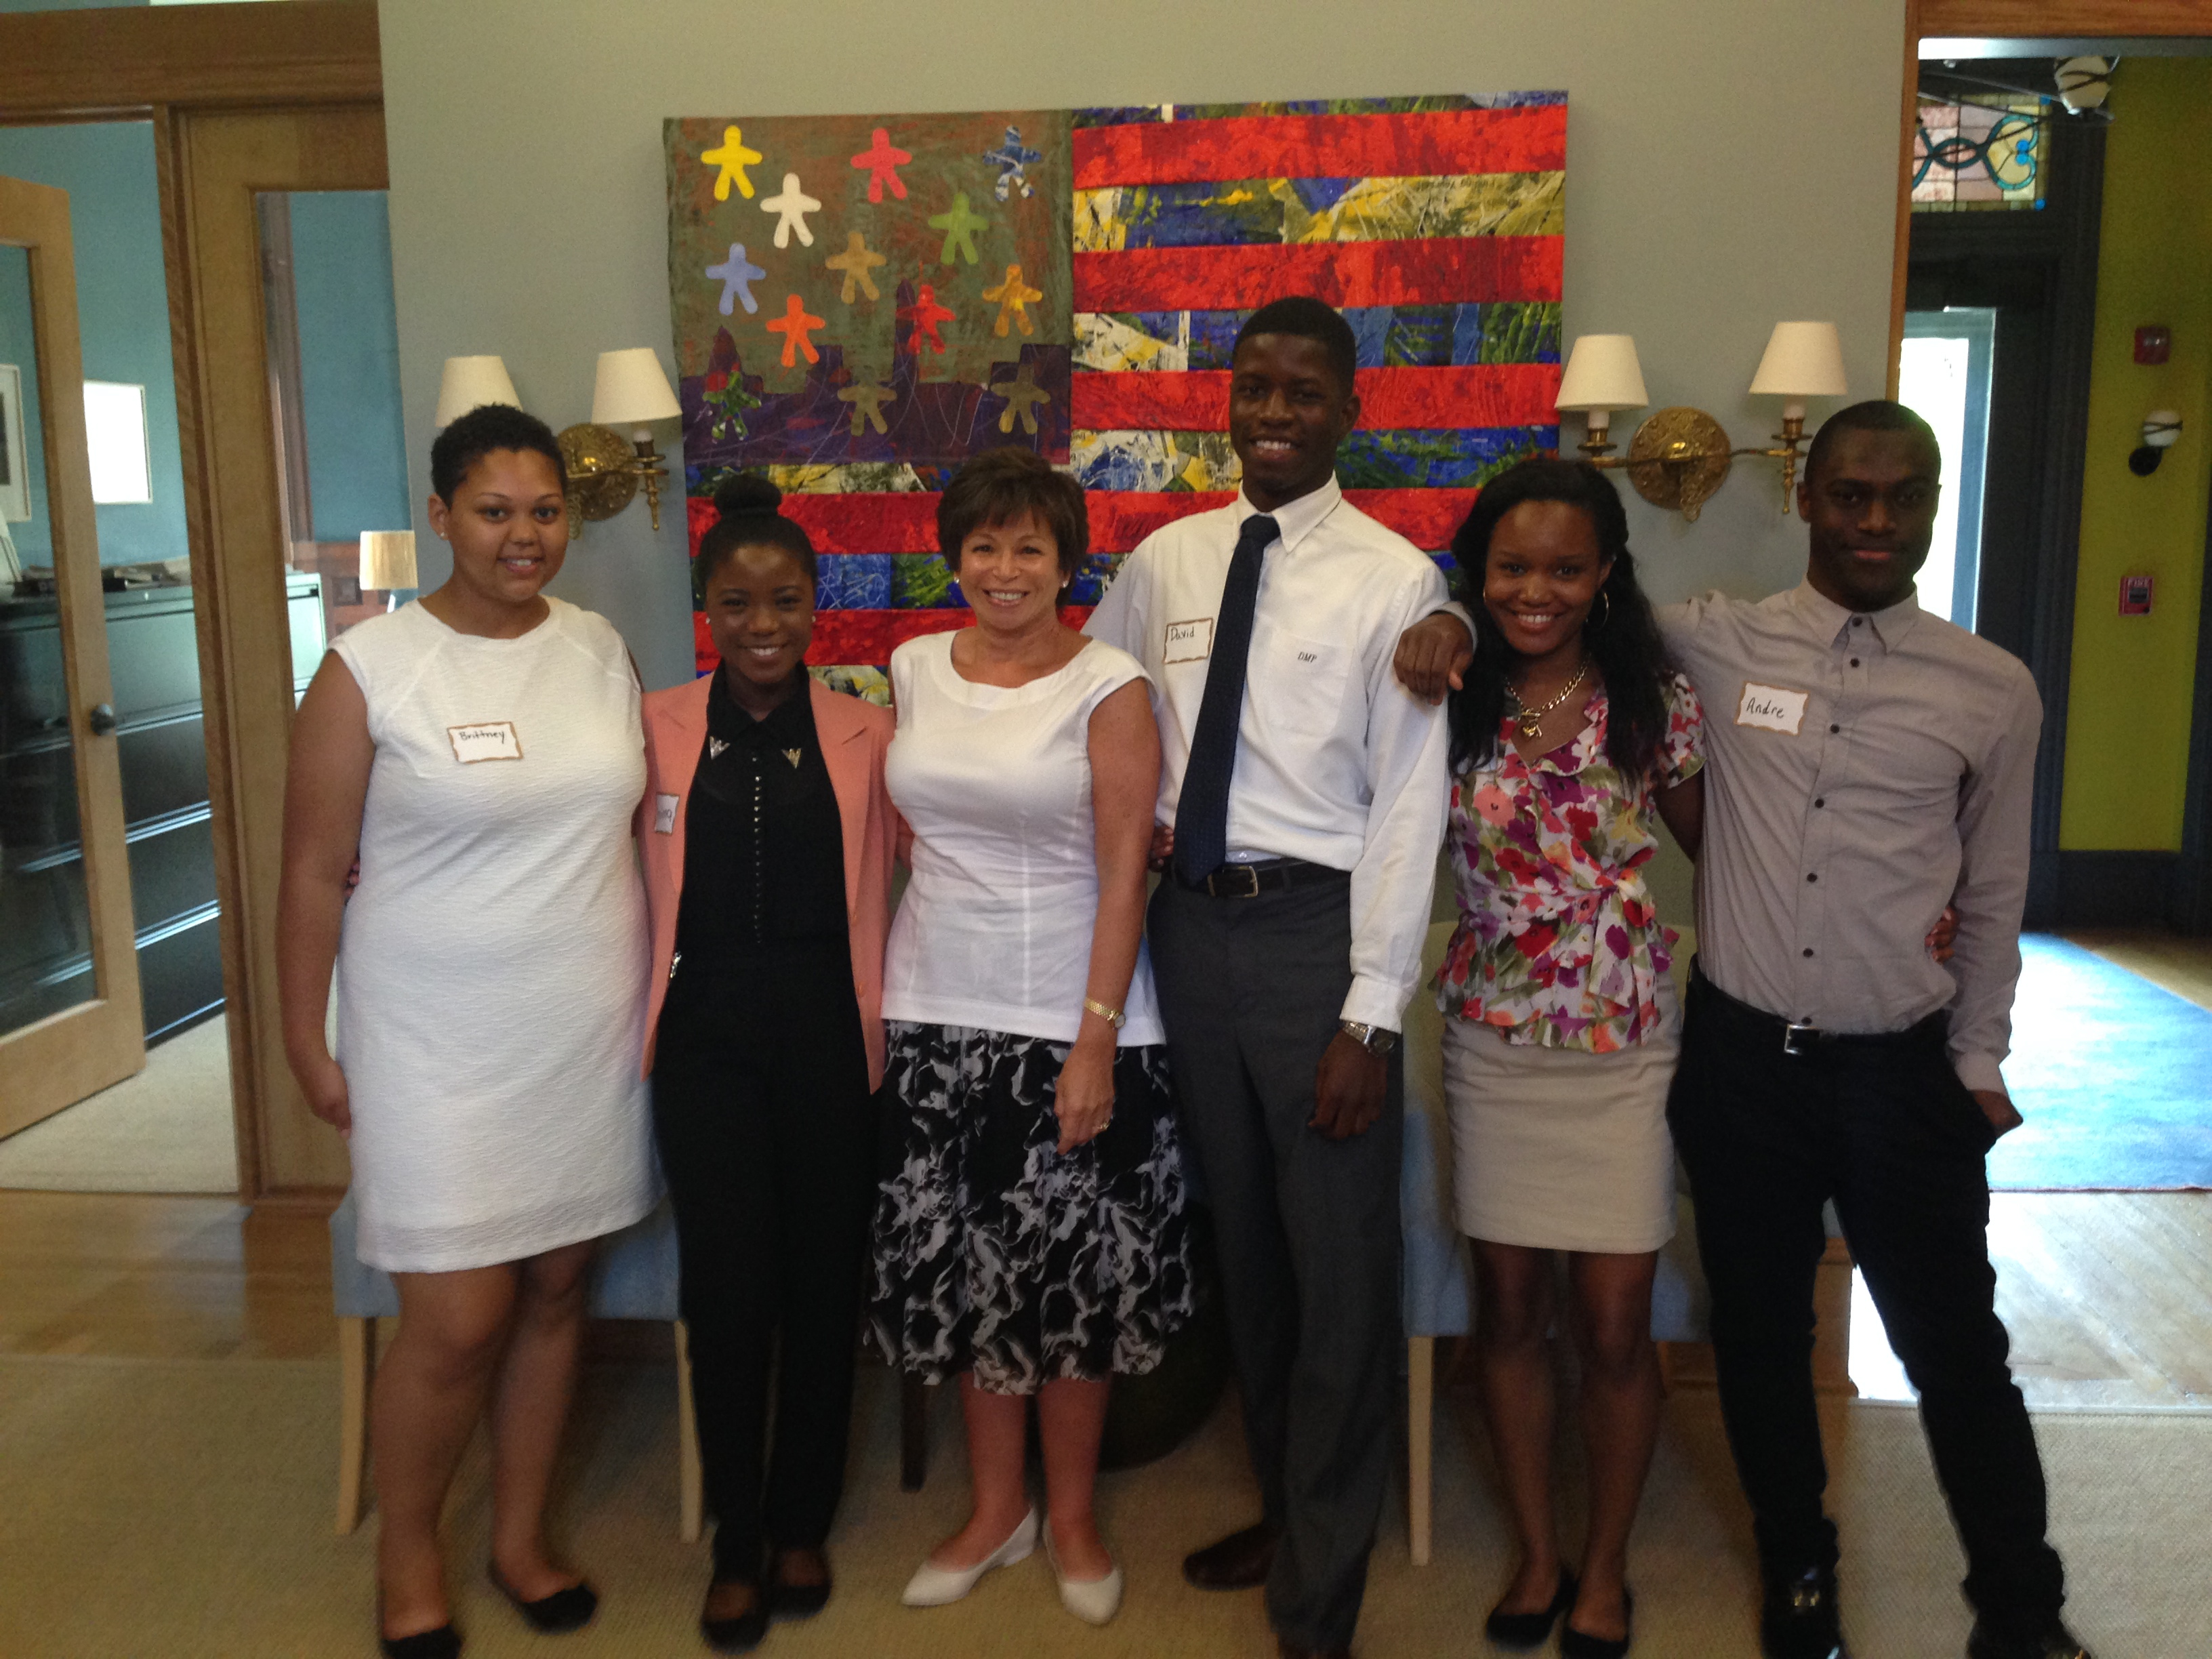 Valerie Jarrett meets with Urban Alliance students and alumni